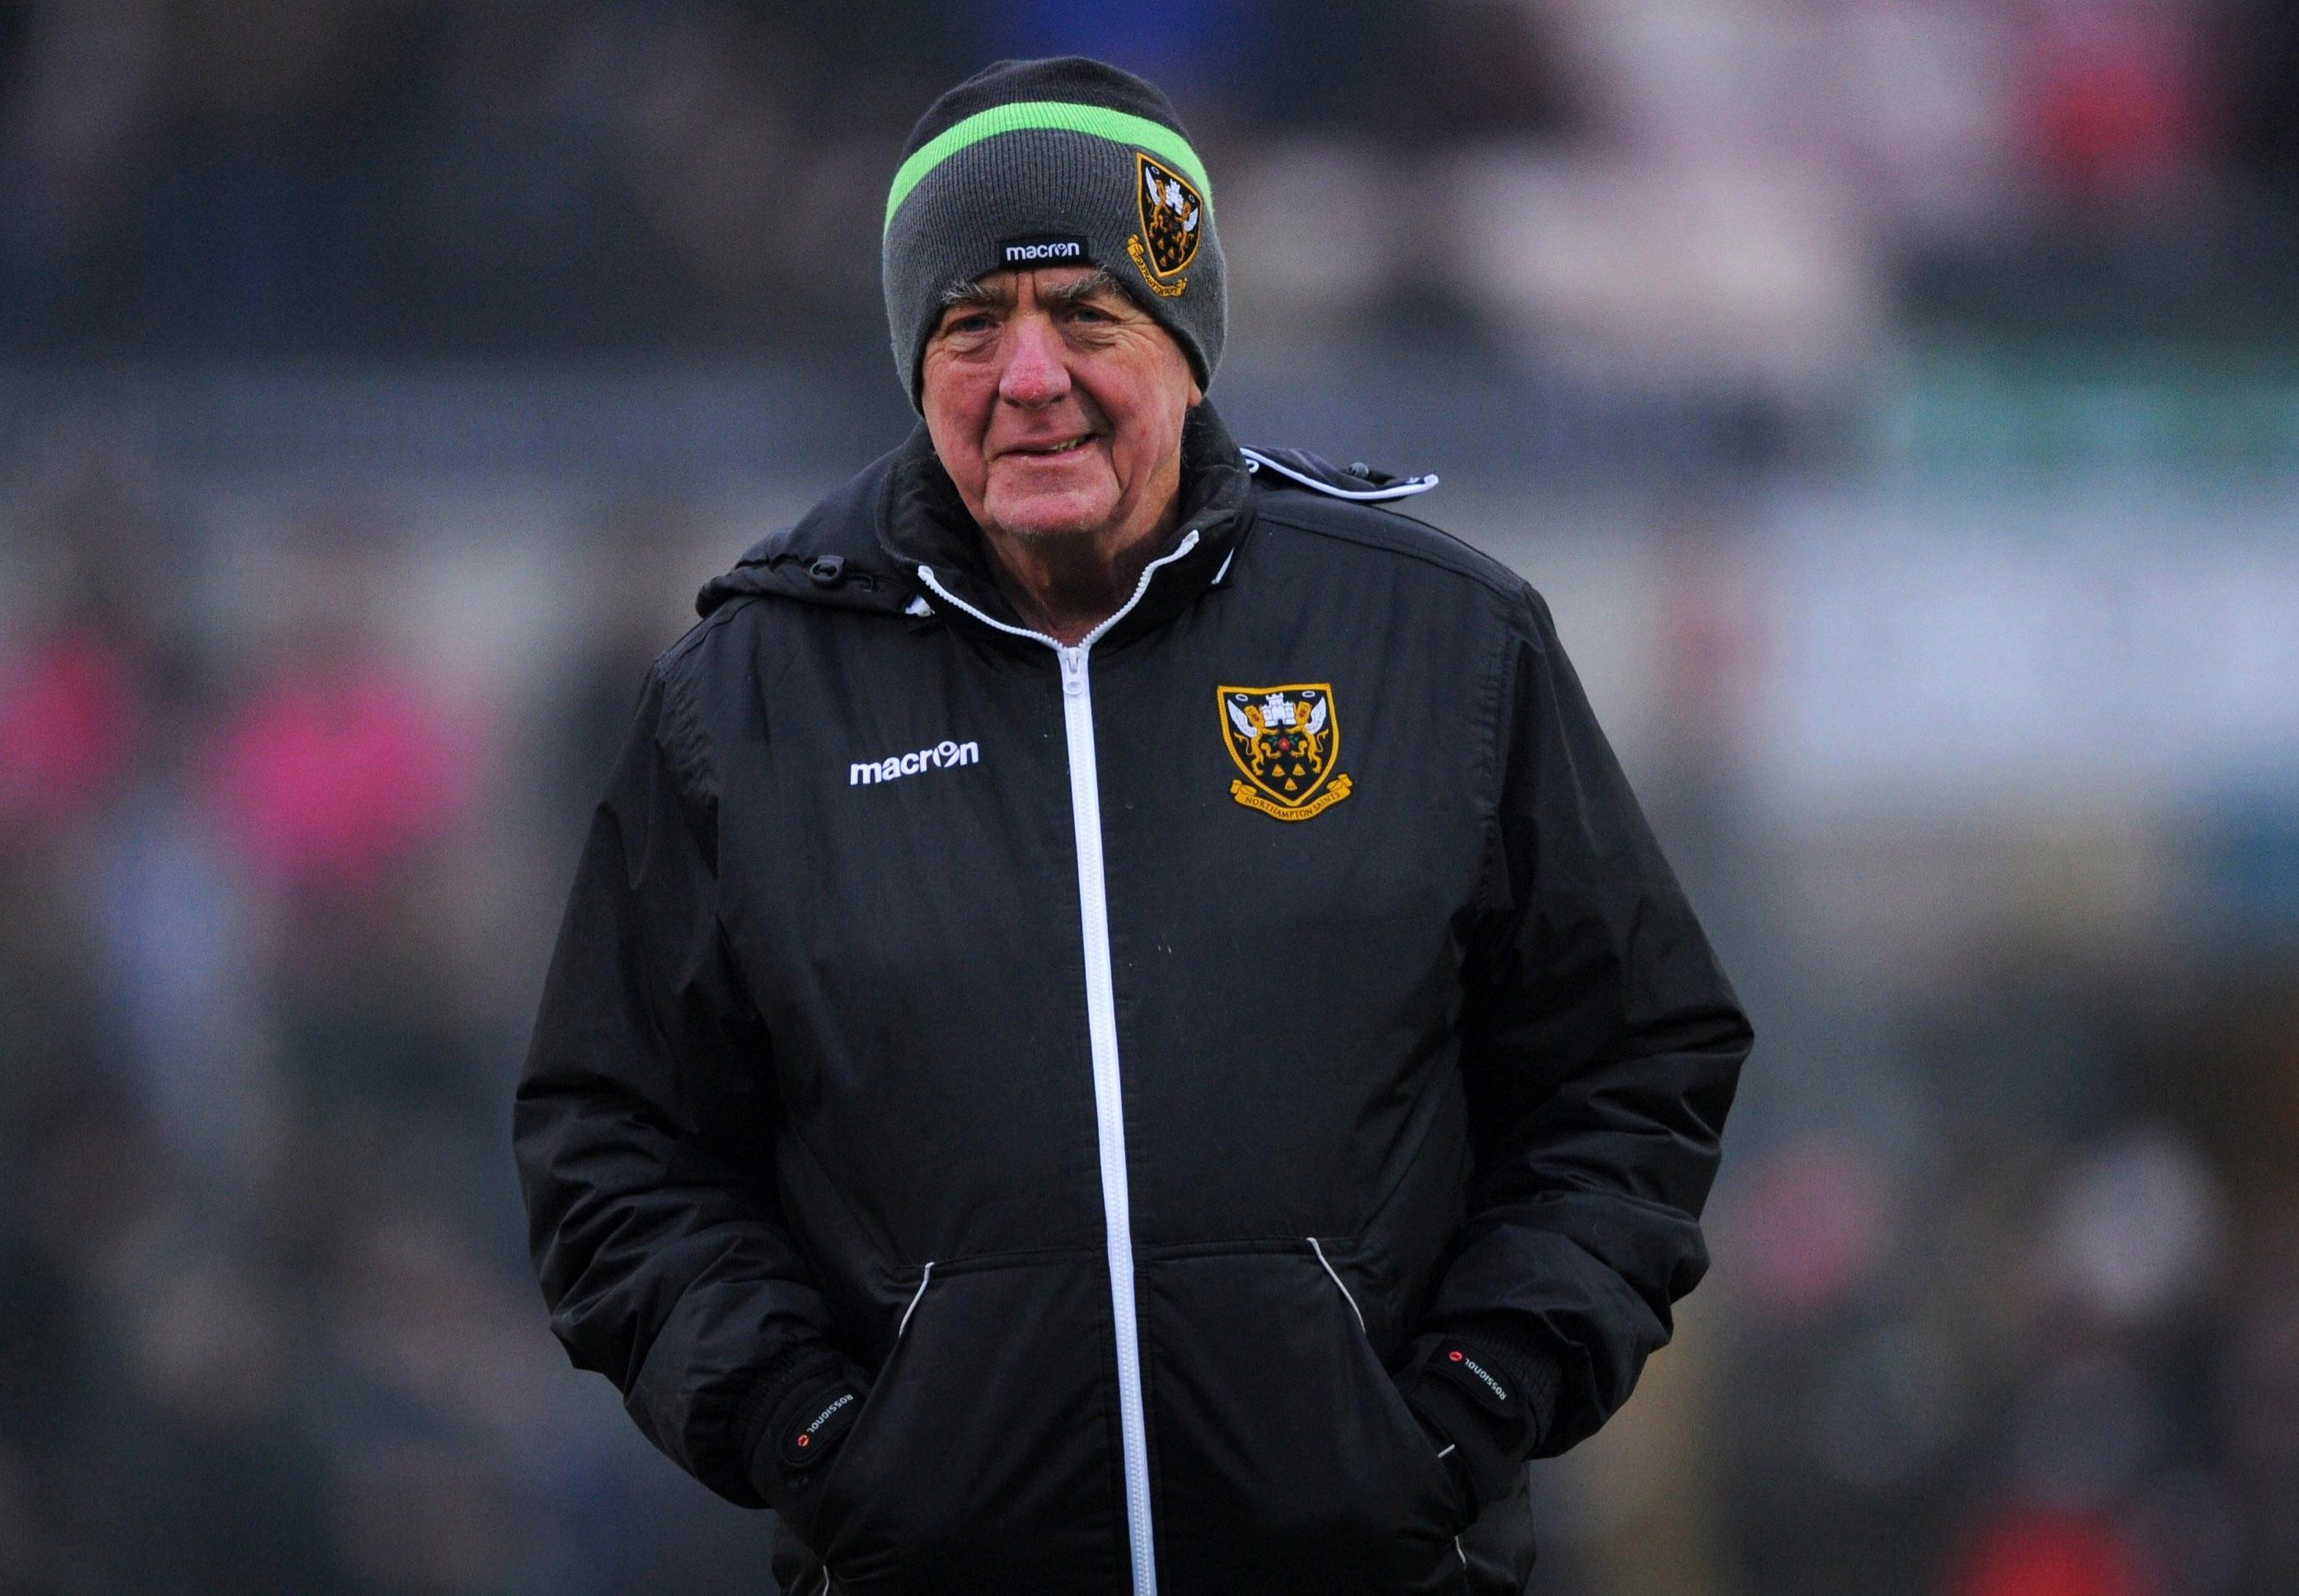 Northampton coach Alan Gaffney criticised North for not attending training ahead of his sides defeat to Sale